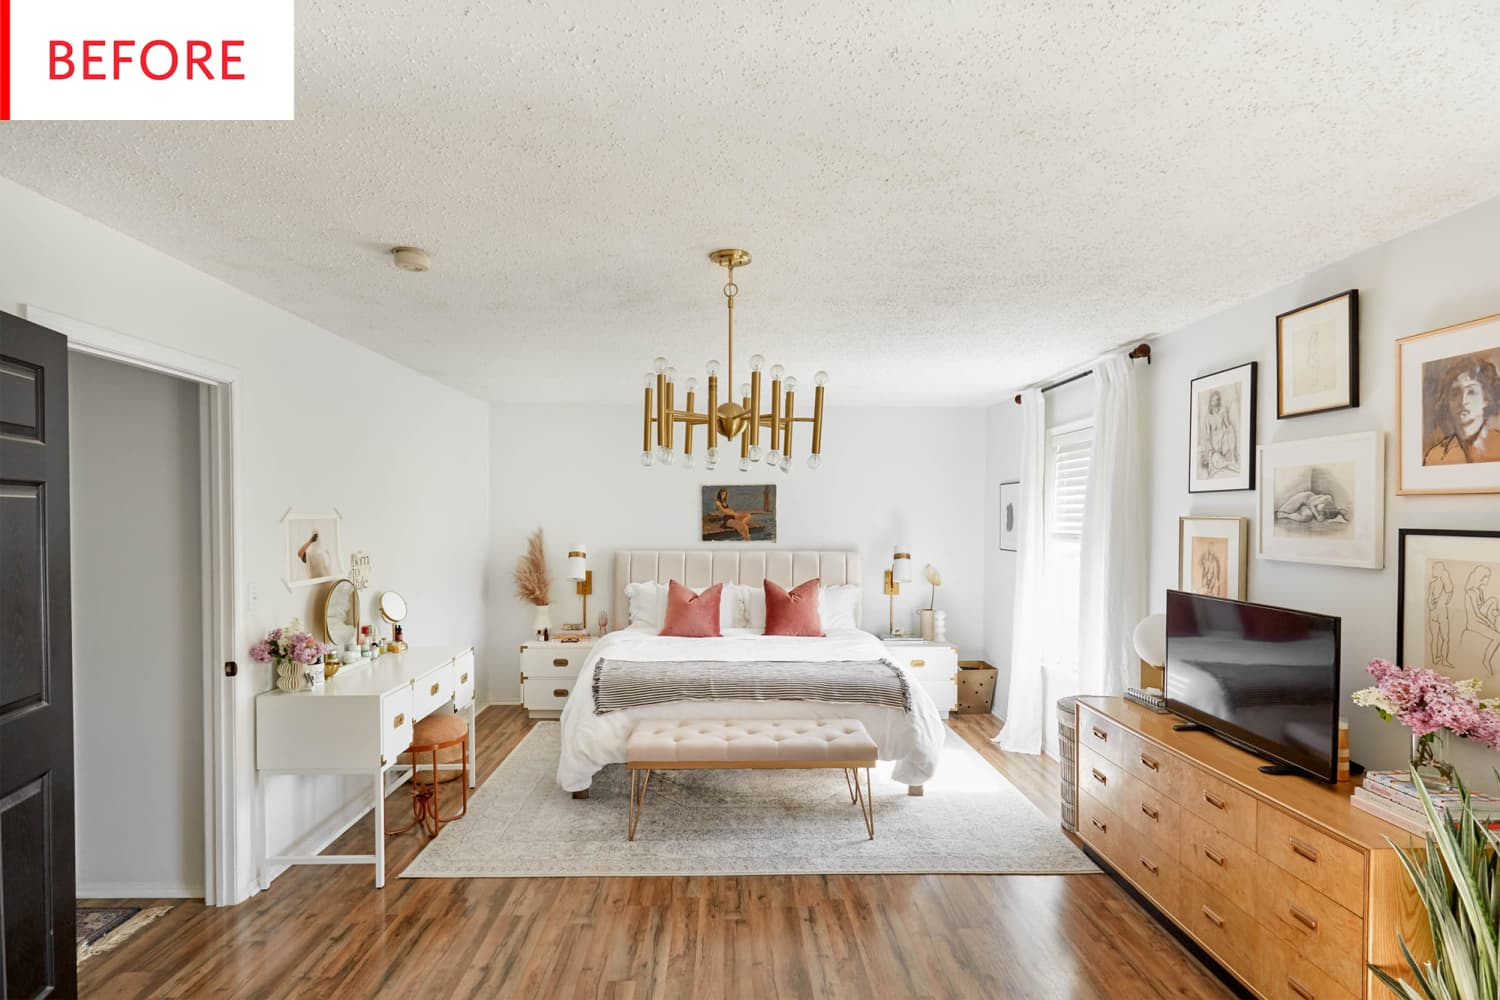 Before & After: This Bedroom Is the Perfect Argument for Painting Your Ceiling Pink